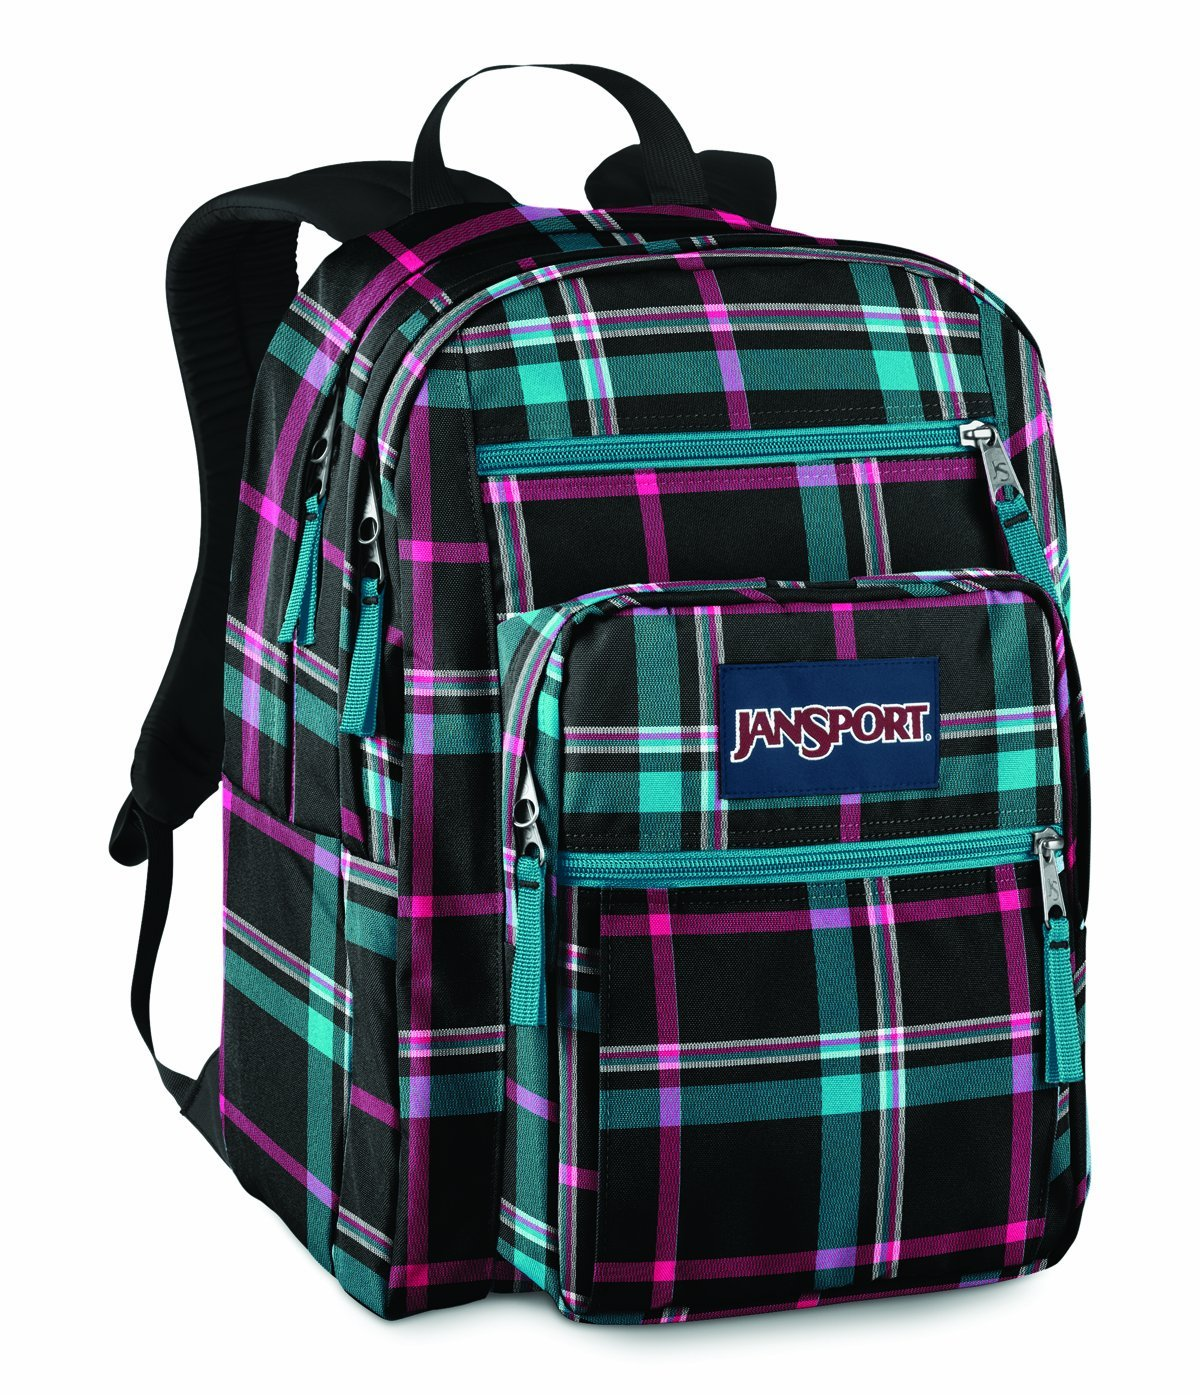 Jansport Girls Backpacks I8he4A7g